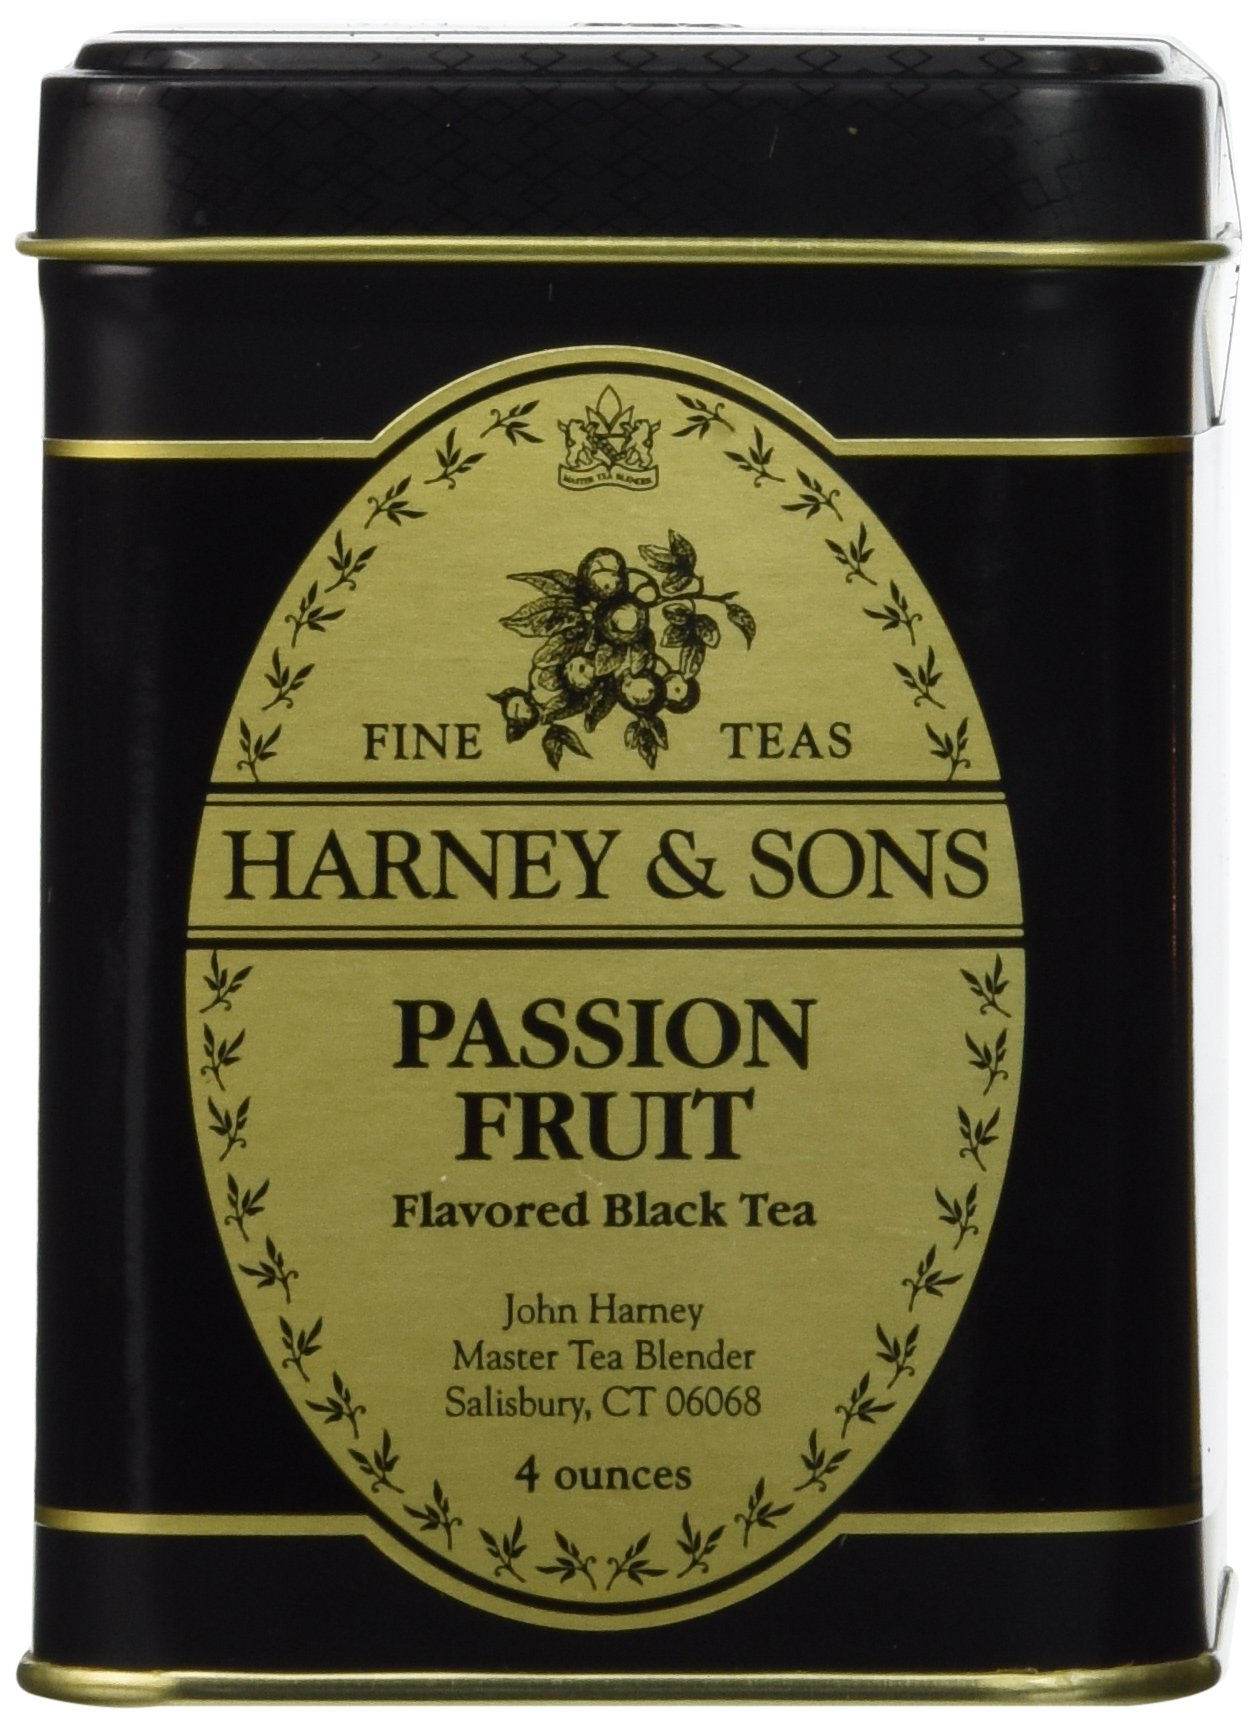 Harney & Sons Passion Fruit Loose Leaf Tea, 4 Ounce by Harney & Sons (Image #1)